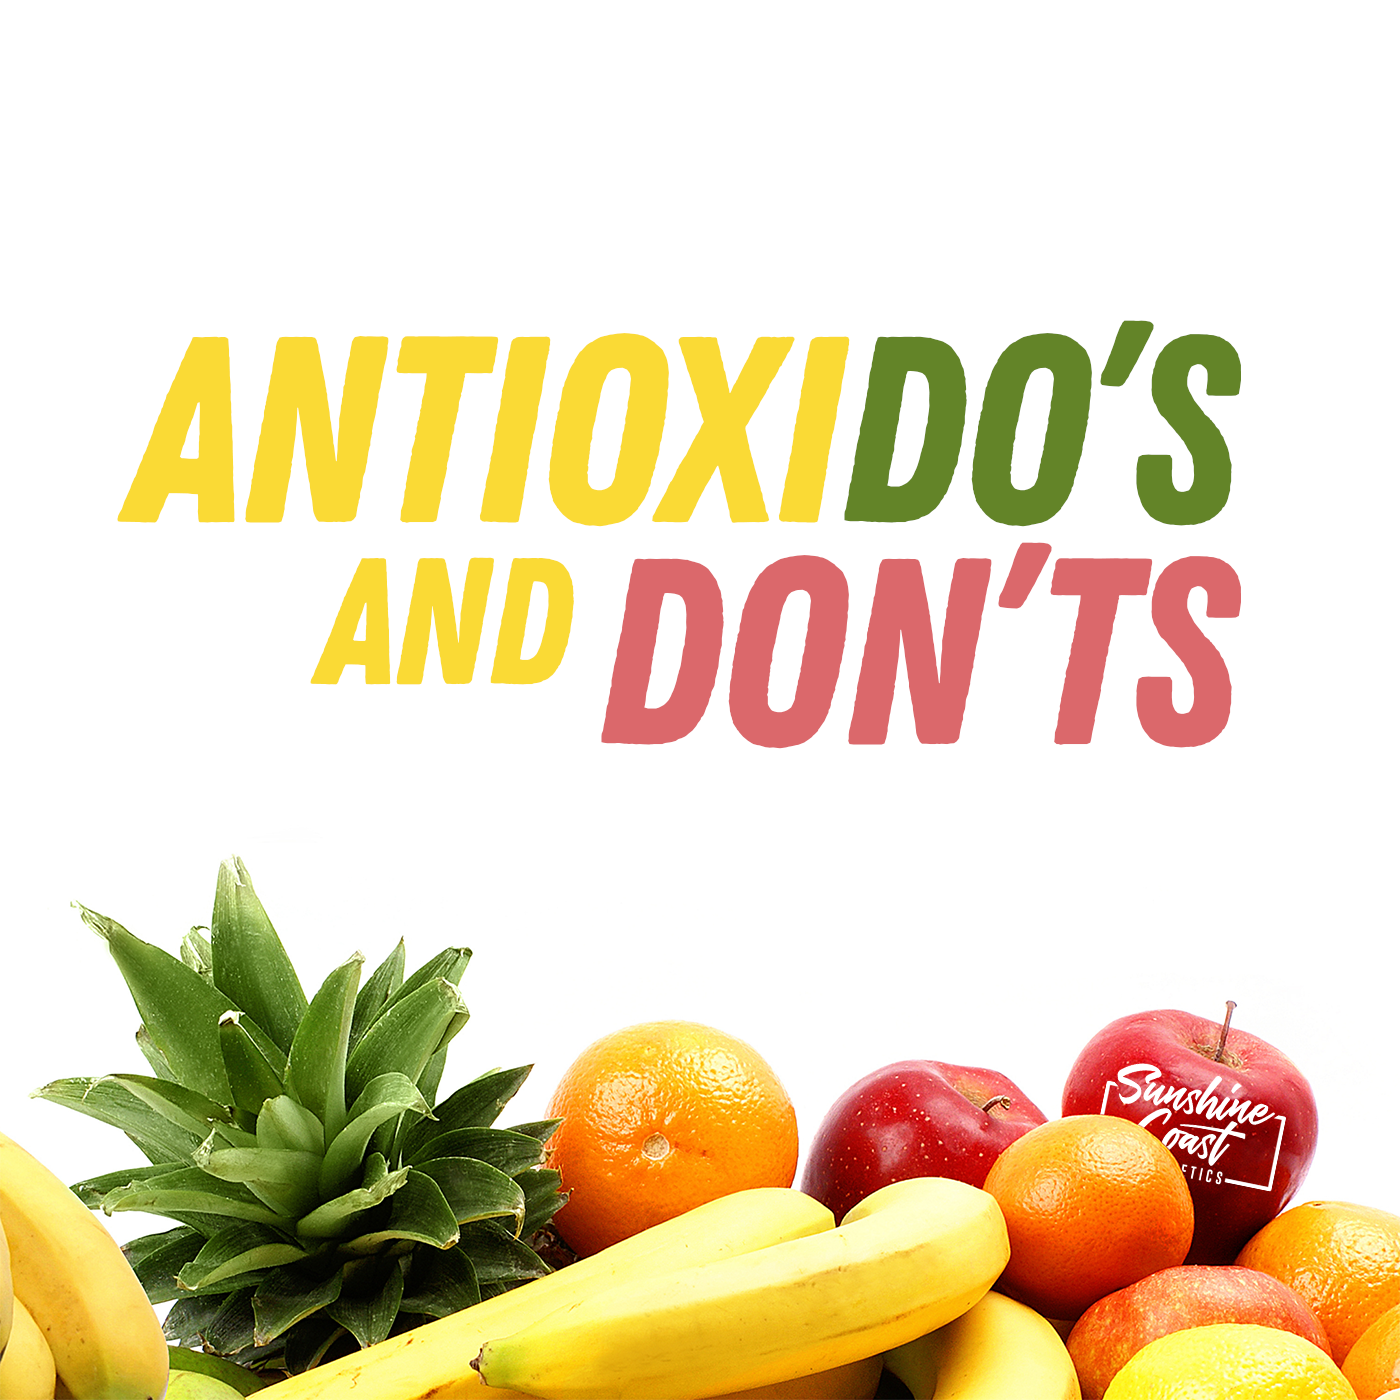 AntioxiDO'S and DON'TS